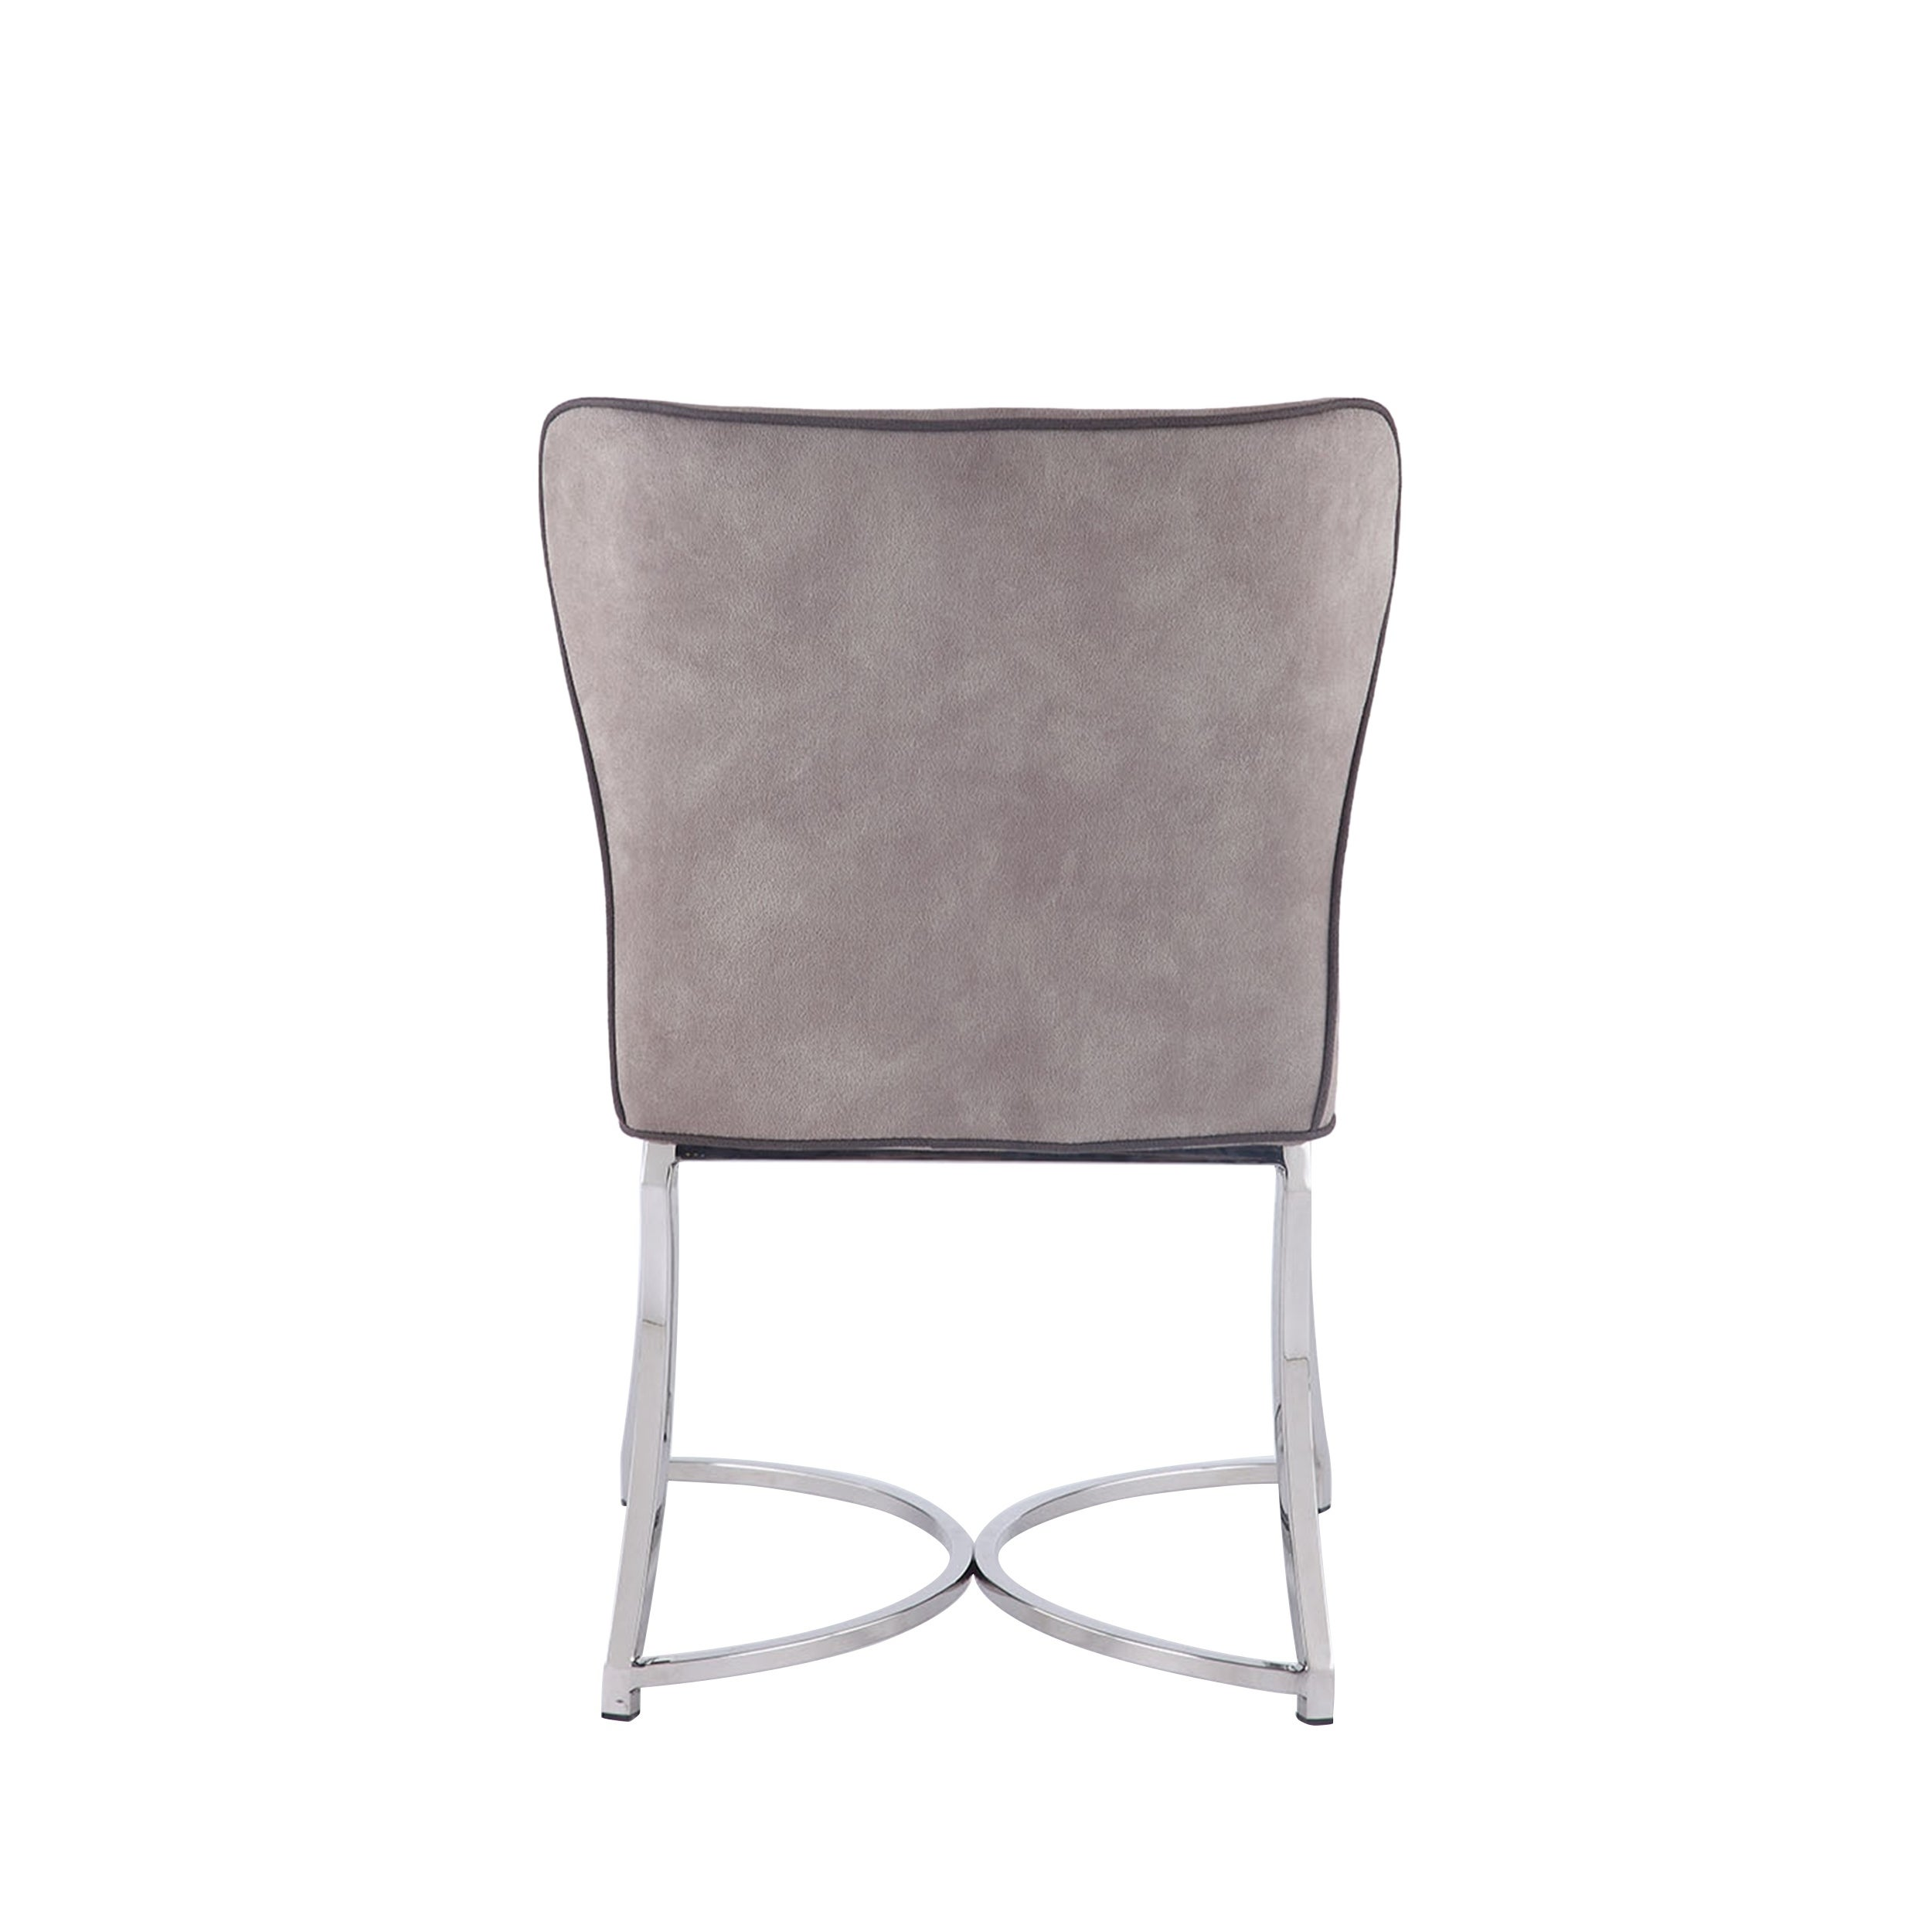 Sensational Somette Summer Mid Century Modern Curved Back Chair With Piping Set Of 2 Machost Co Dining Chair Design Ideas Machostcouk